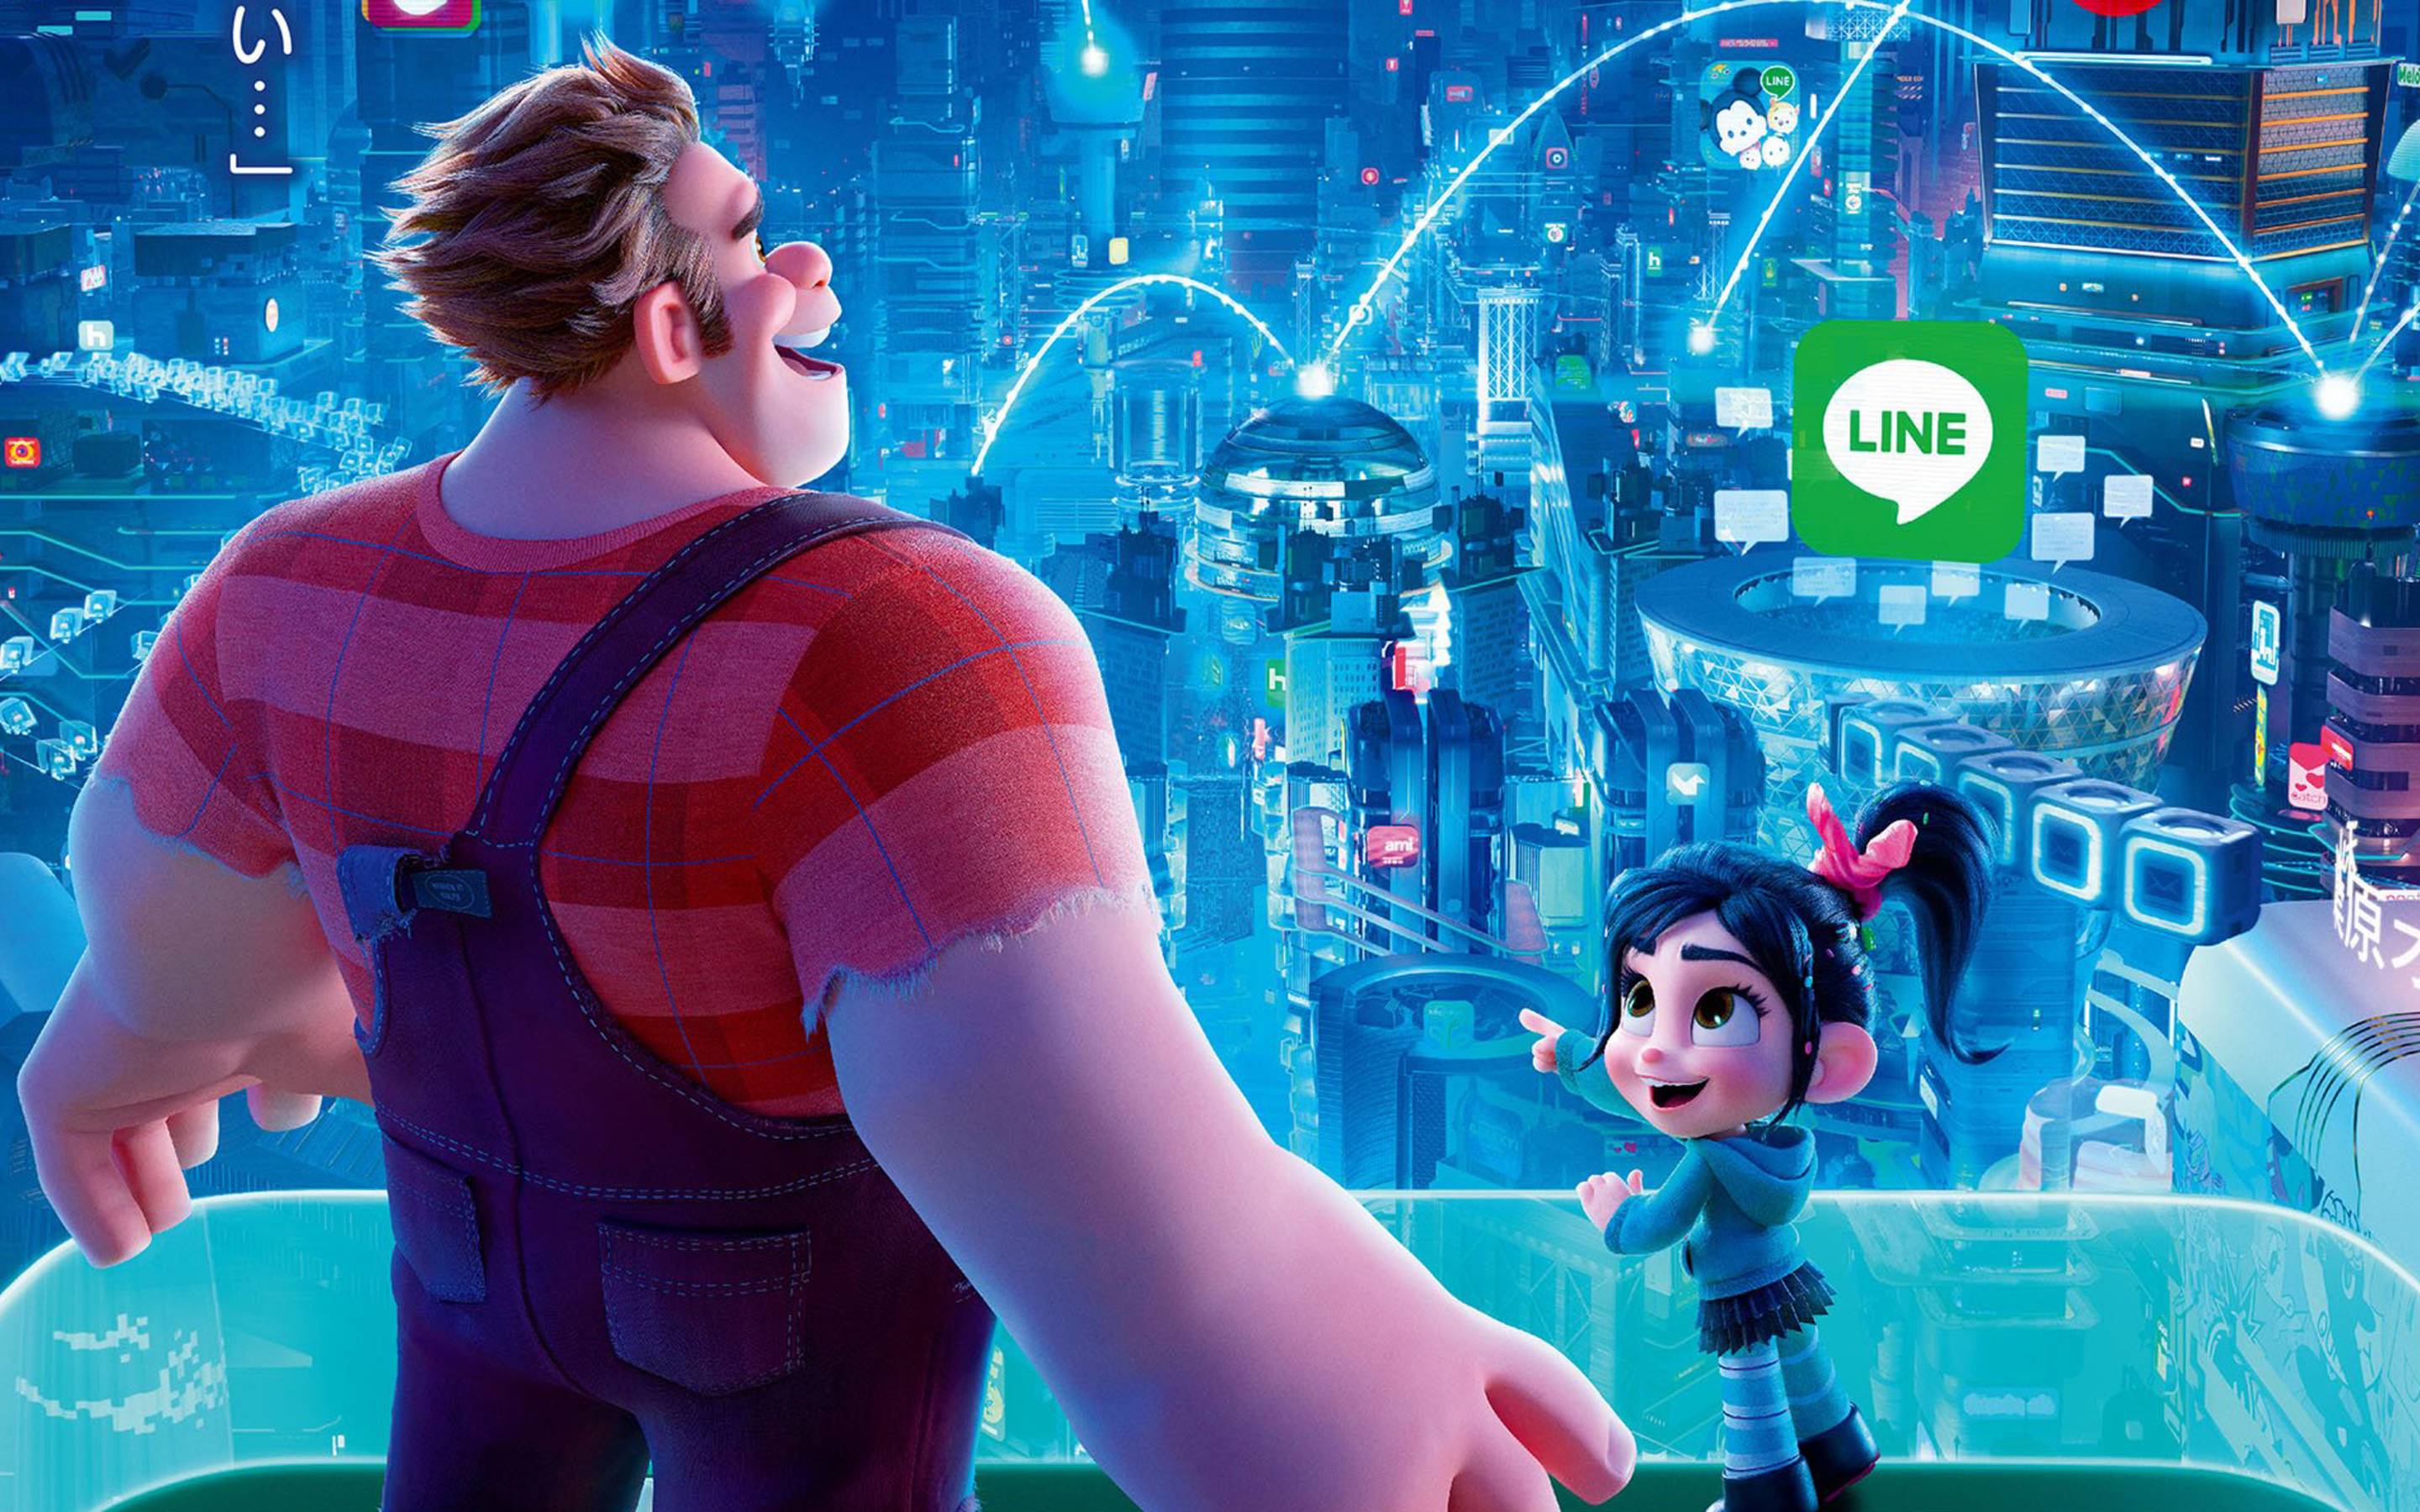 ralph-breaks-the-internet-wreck-it-ralph-2-chinese-poster-zm-2880x1800